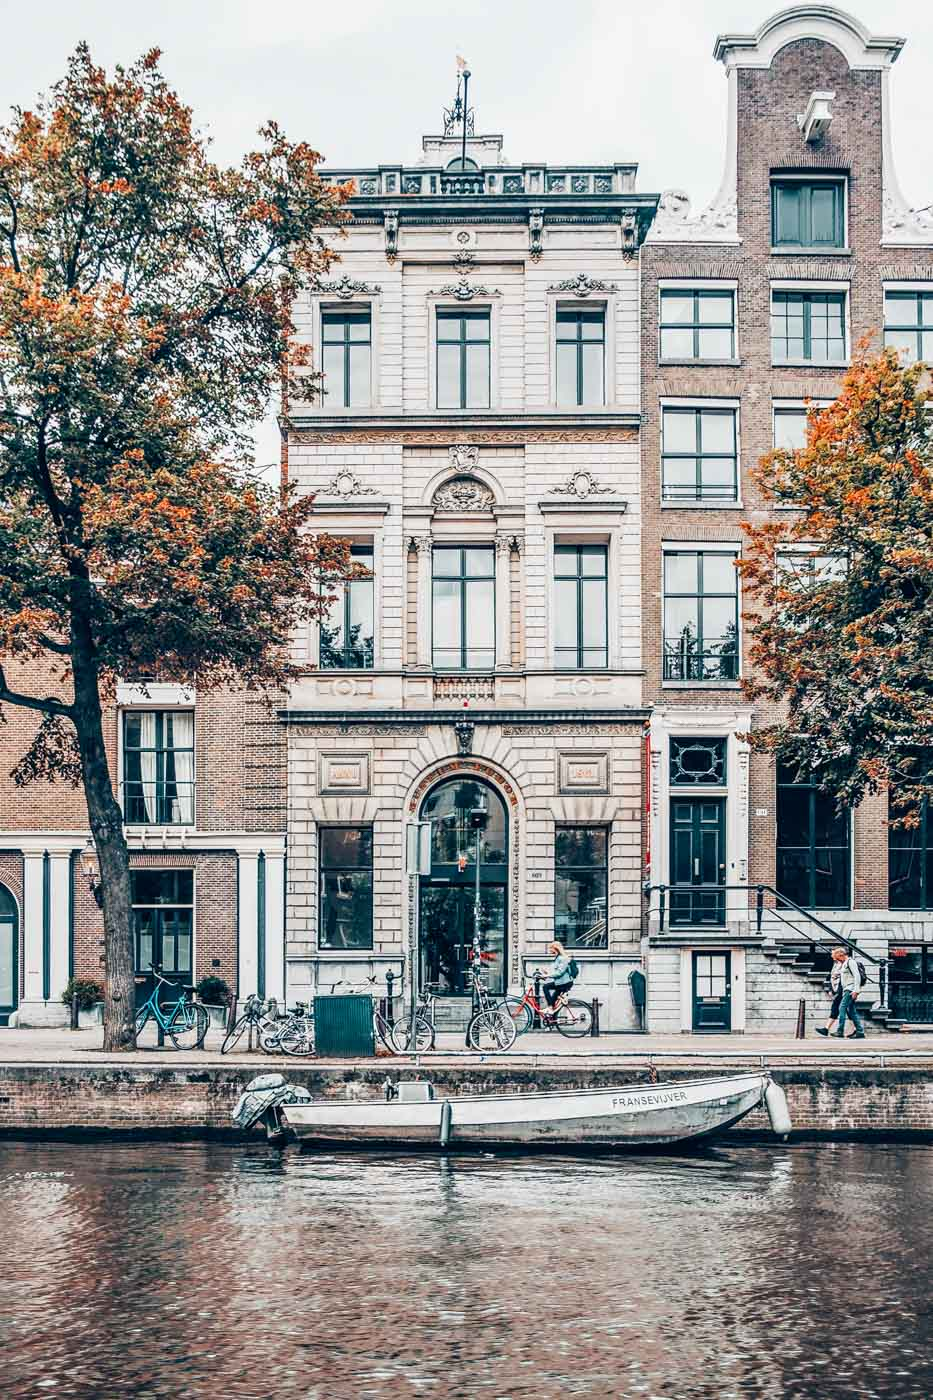 Finding all the best gems of Europe including the charming, Amsterdam!